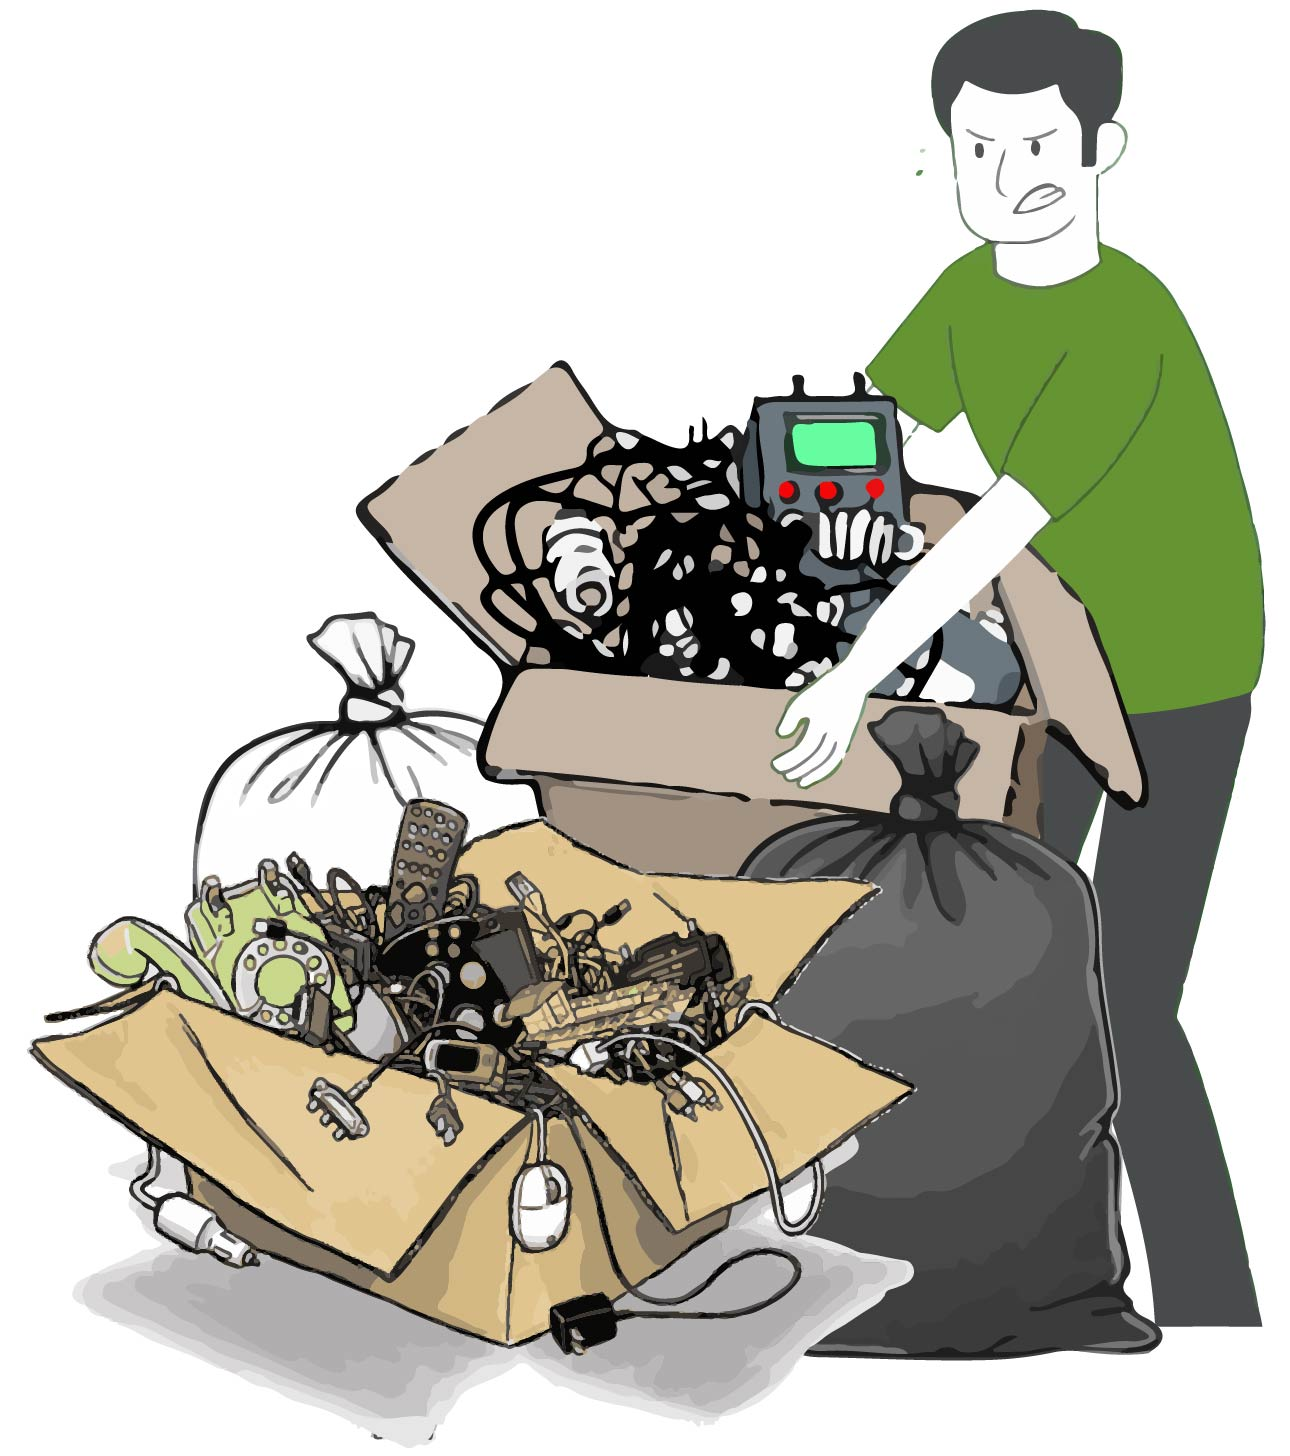 Quick Junk Removal Services in Wilsonville, OR